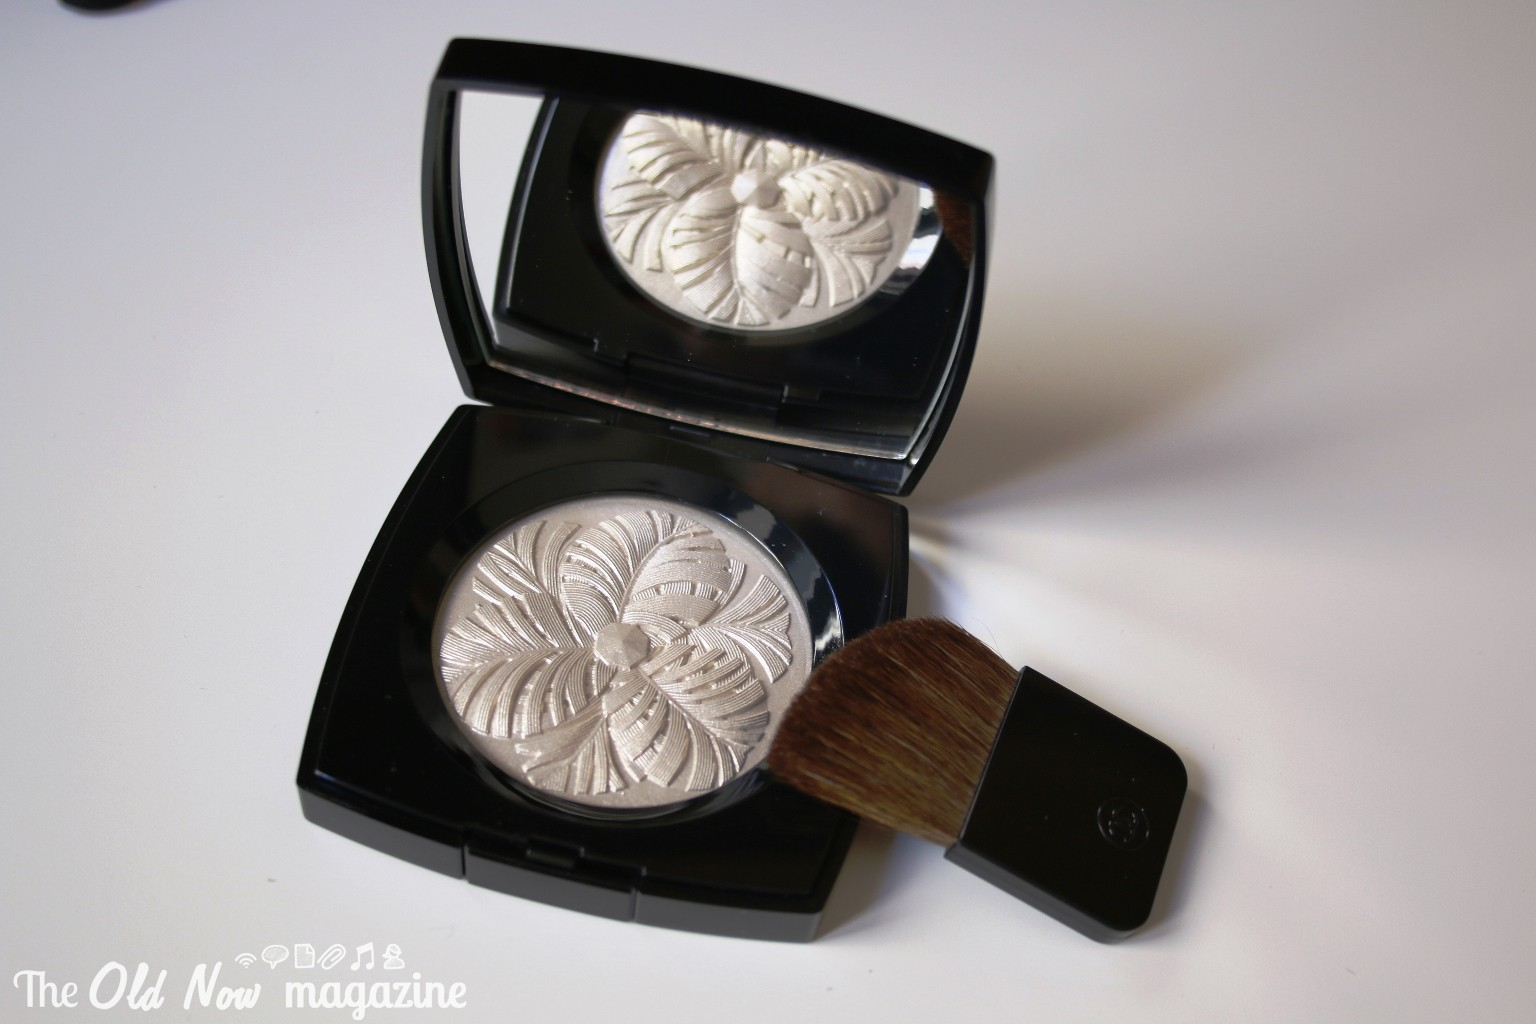 Collection Plumes Precieuses de Chanel THEOLDNOW (10)